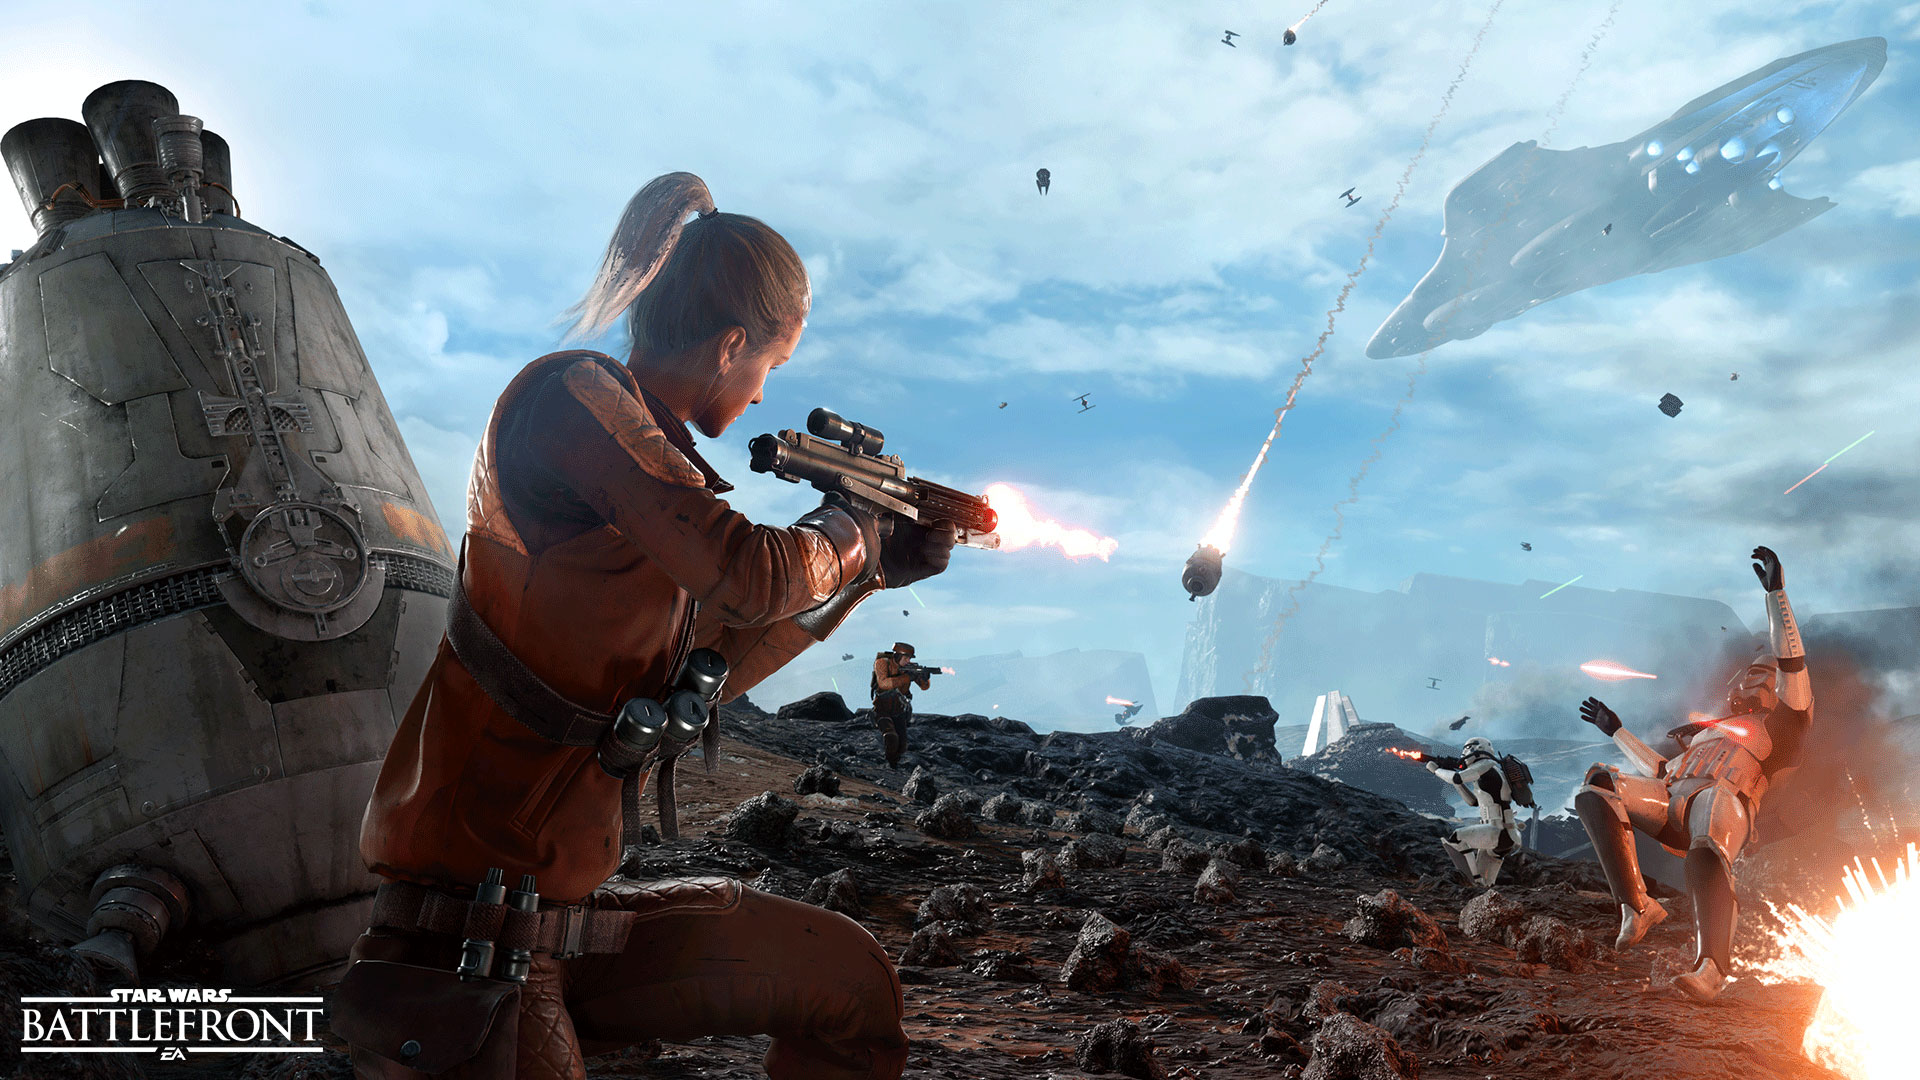 Battlefront Will Have an In-Game Diorama